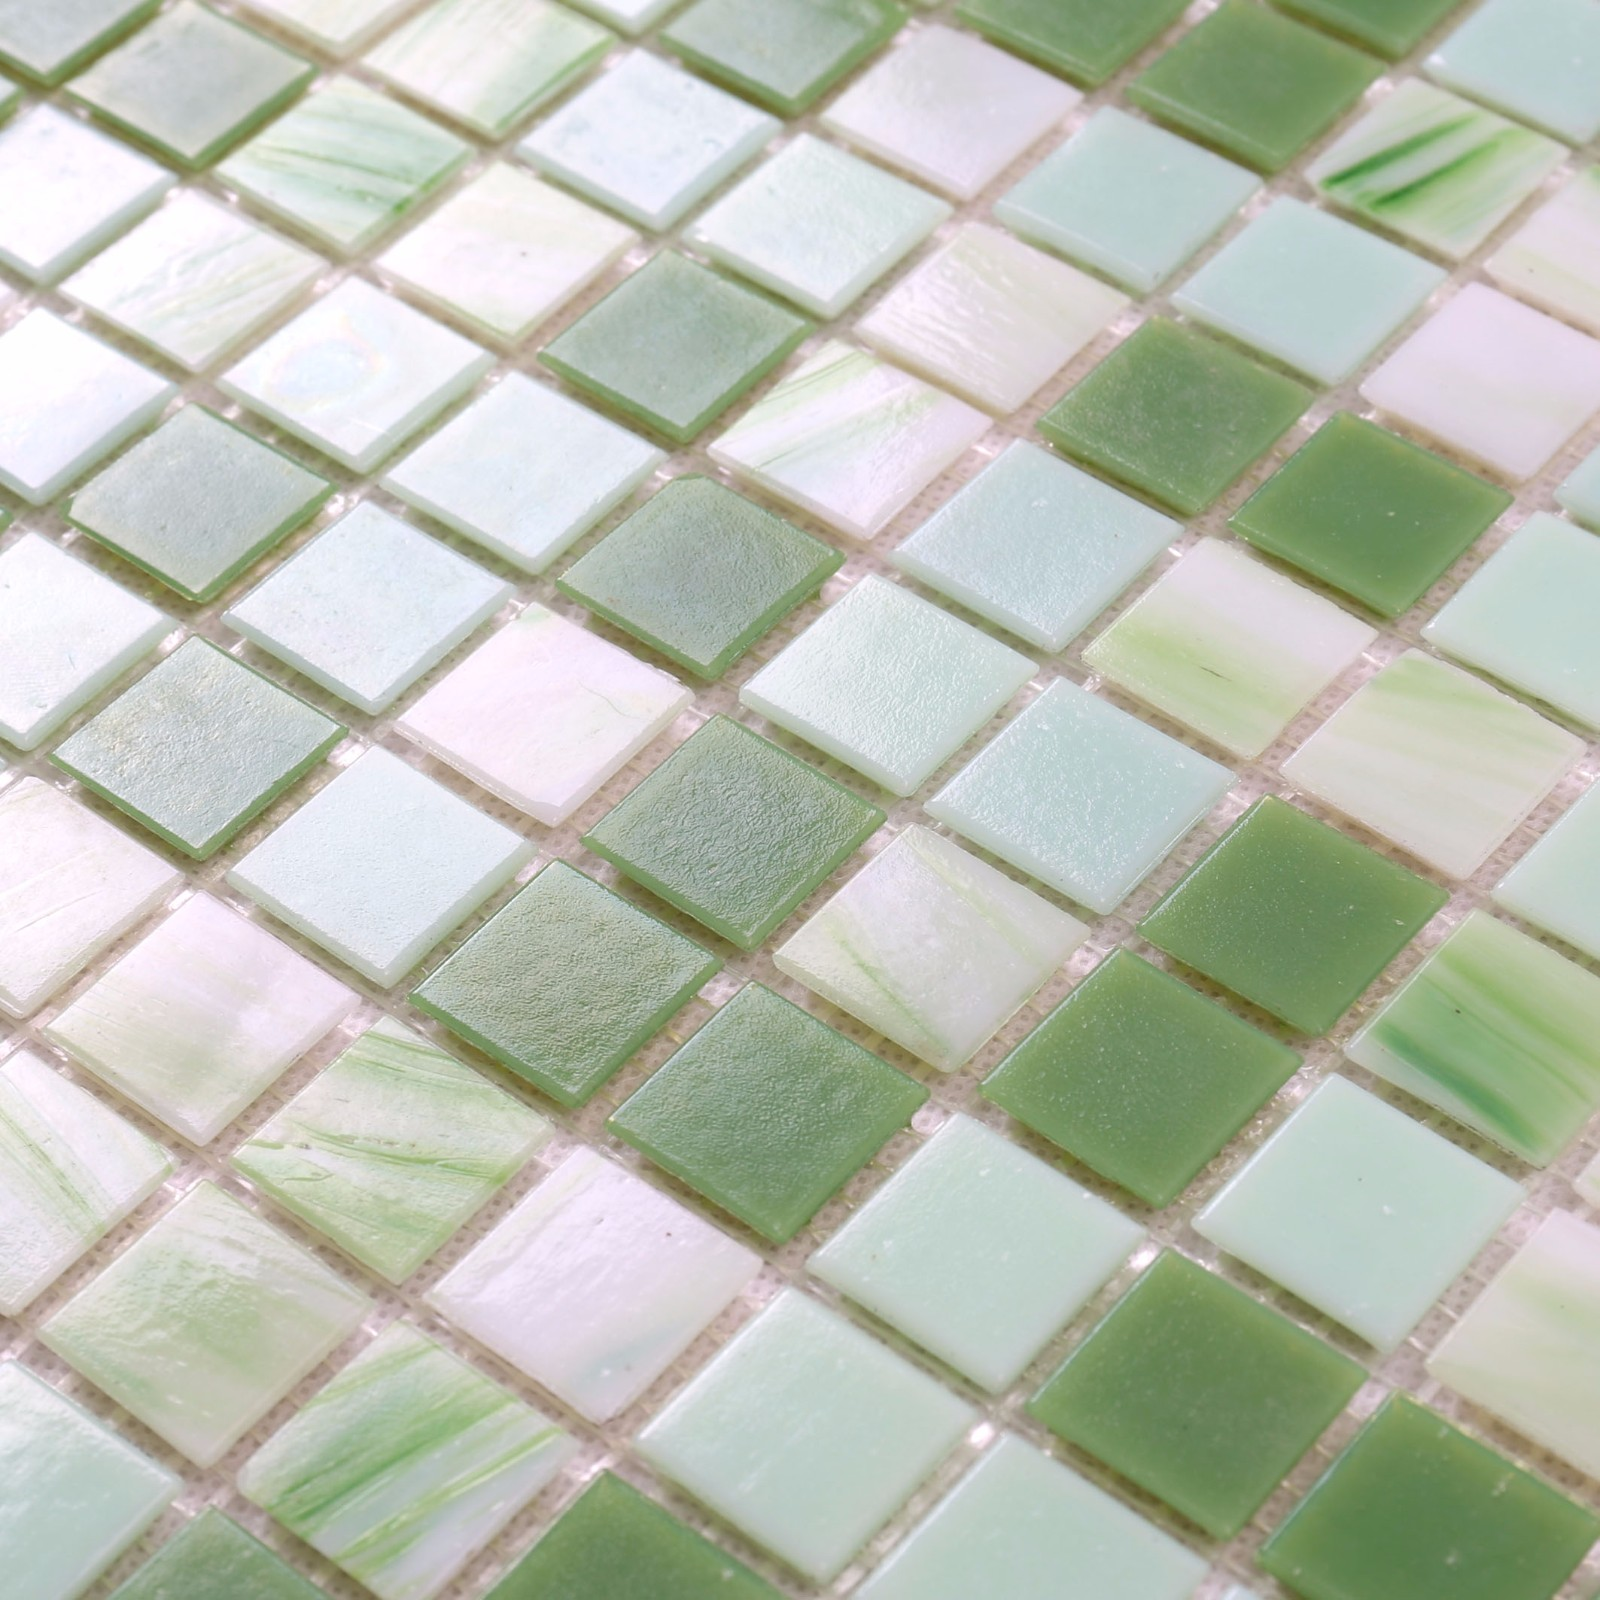 Heng Xing floor ceramic mosaic tile Suppliers for bathroom-4